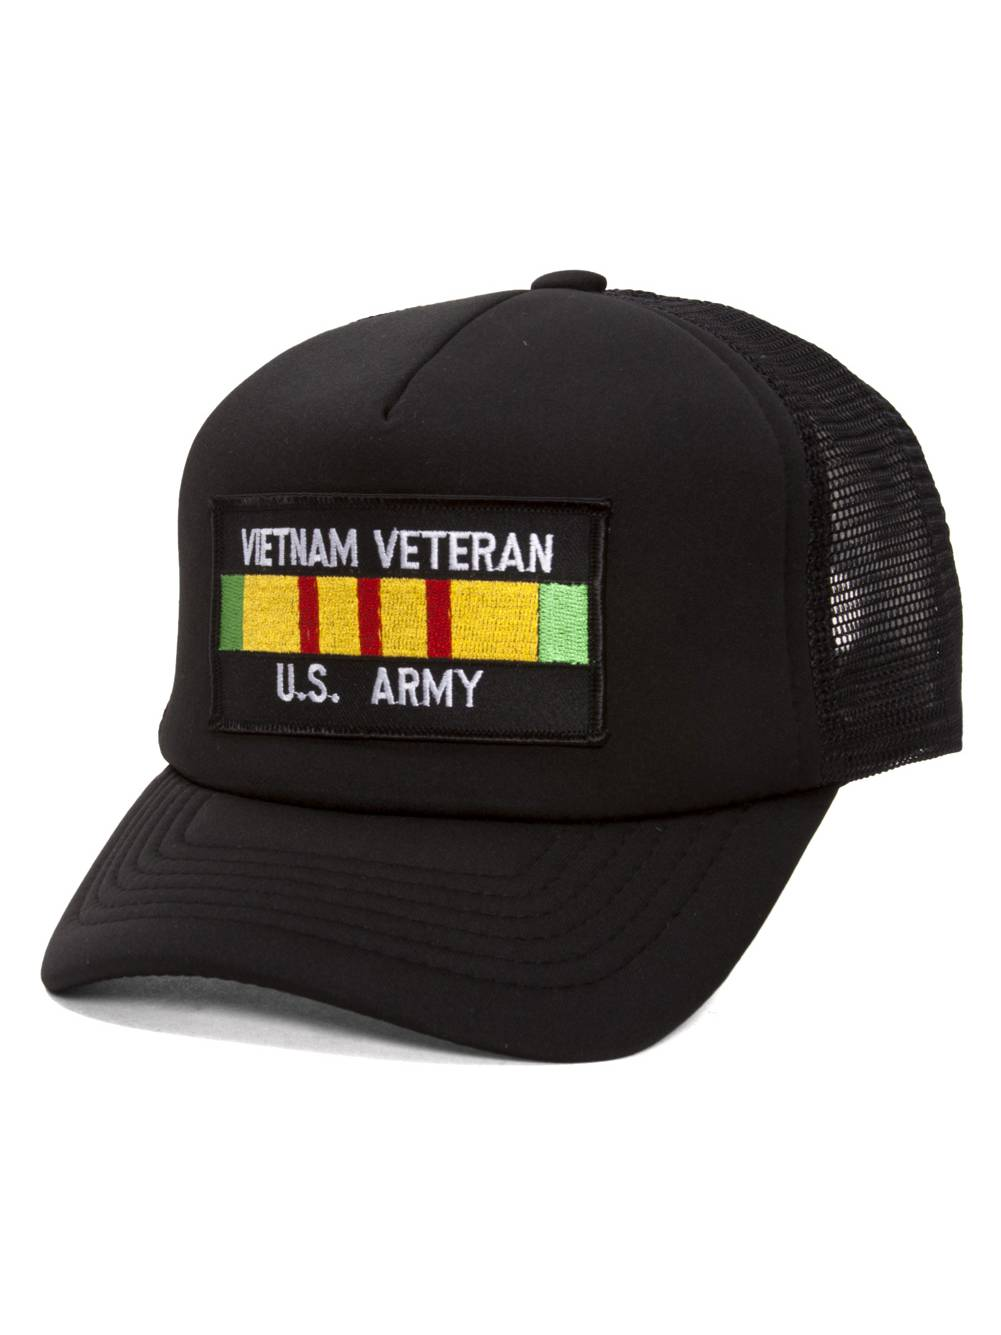 Military Patch Adjustable Trucker Hats - Vietnam Veteran - US Army -  Walmart.com 1ac203eb670